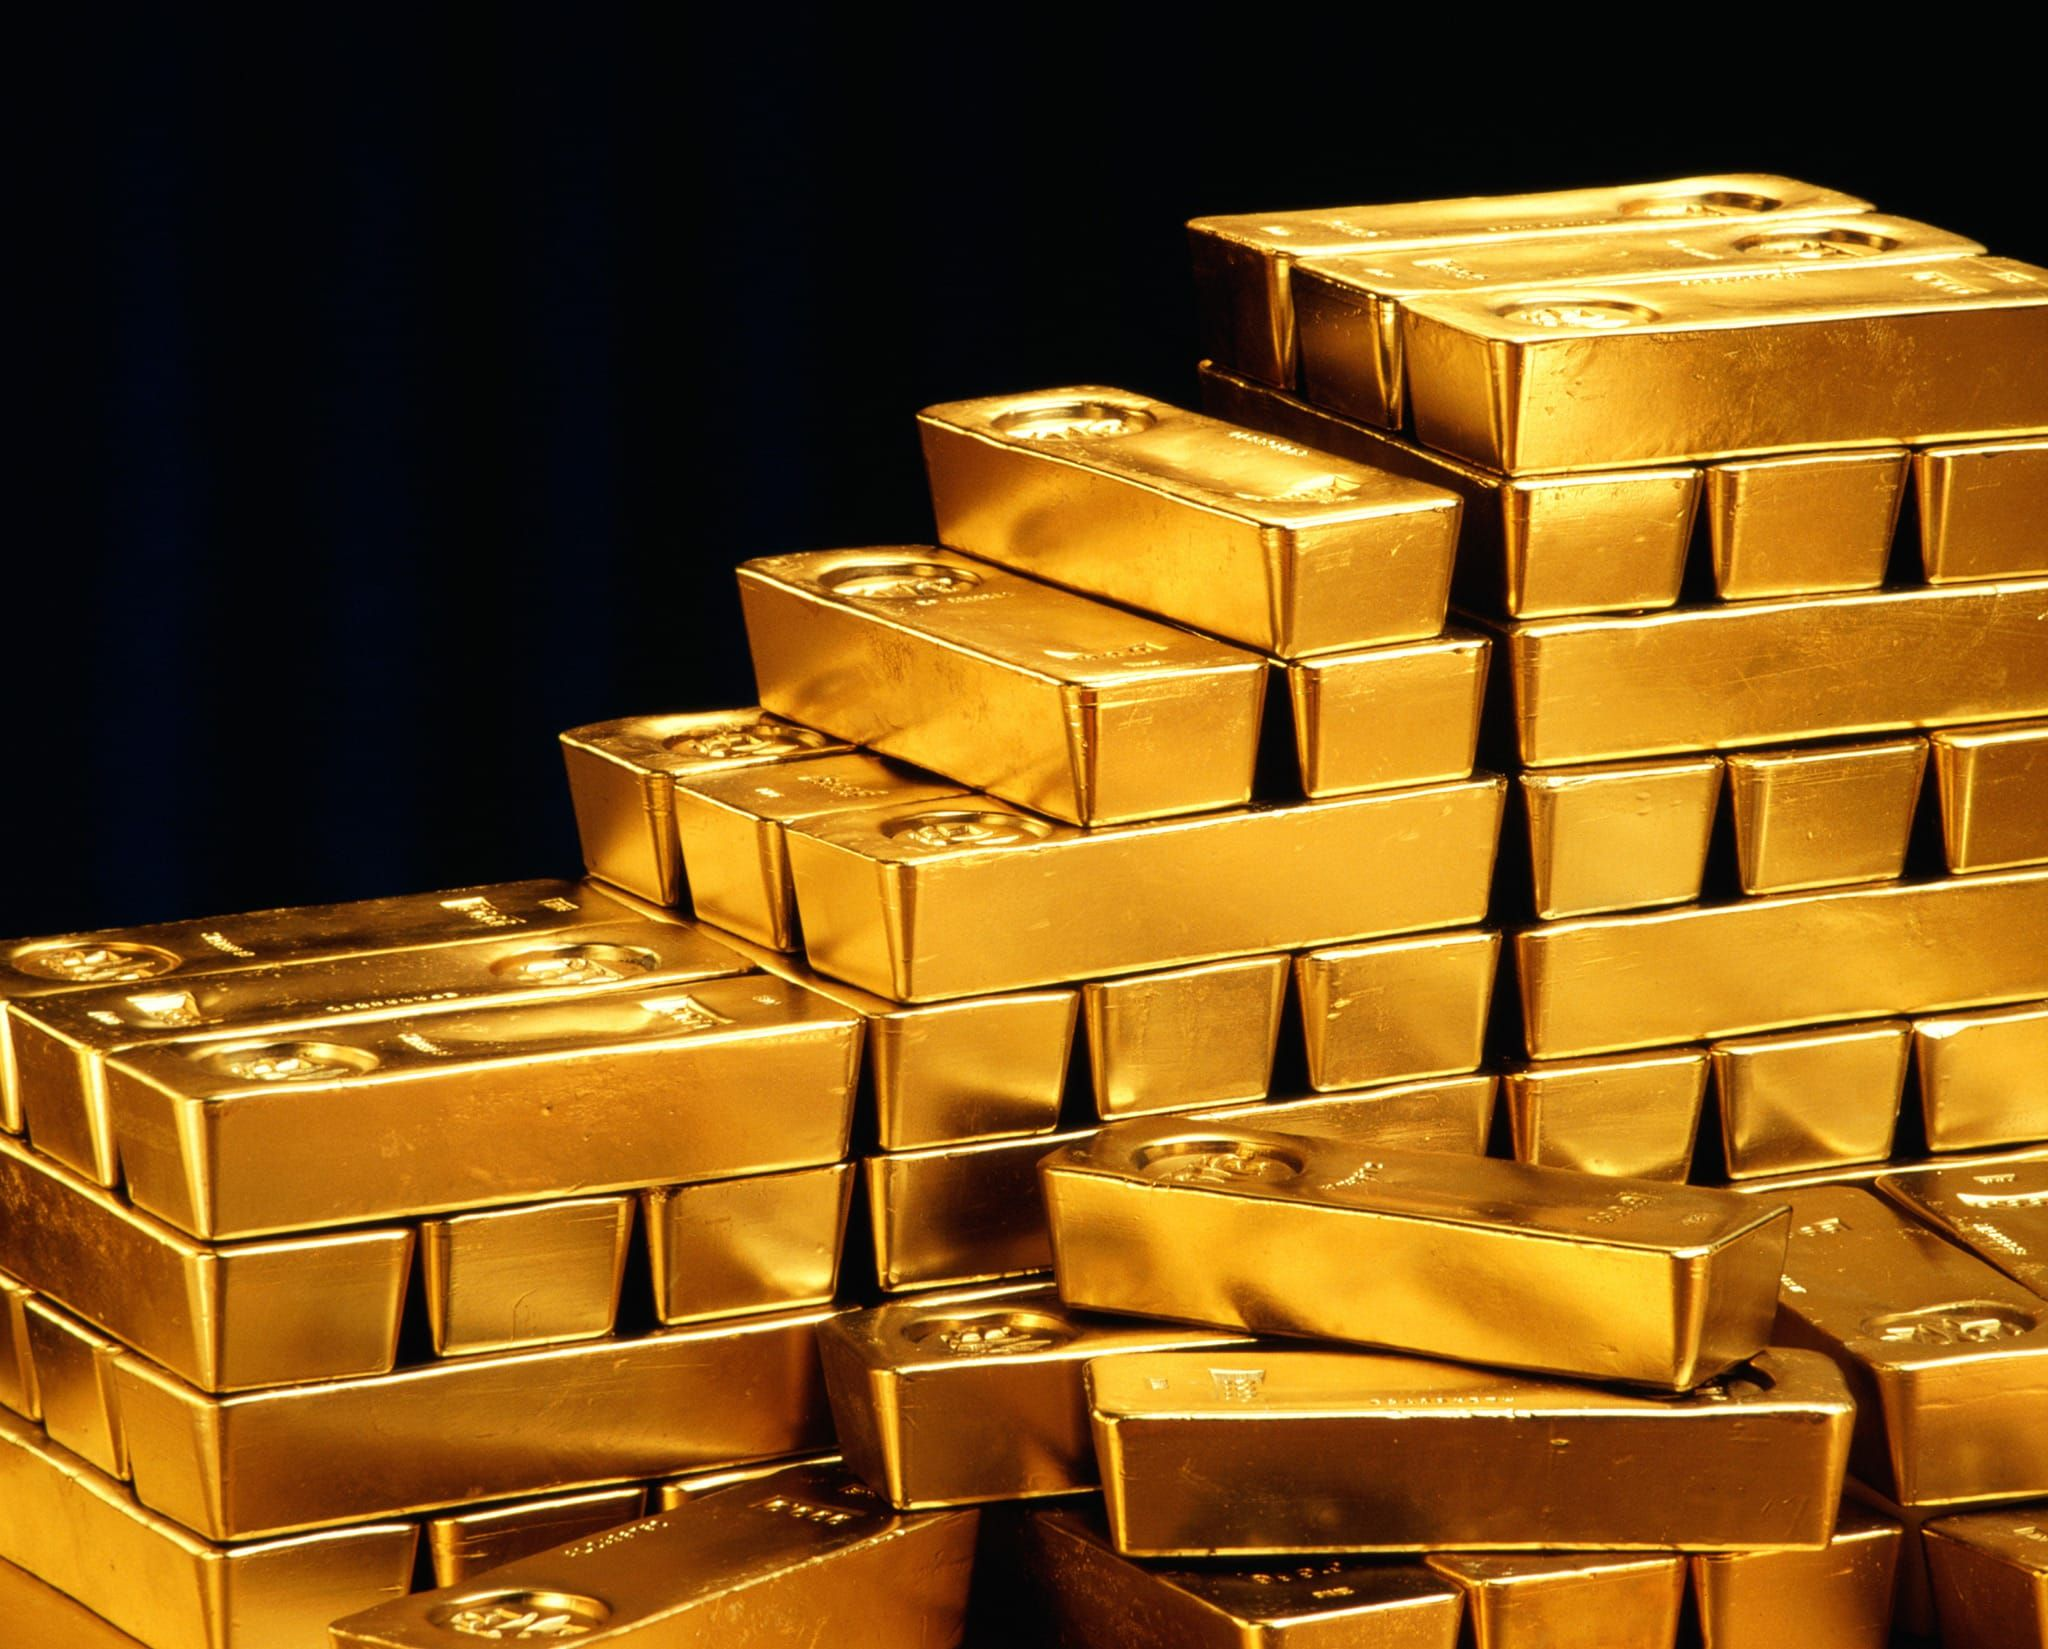 100281353-gold_bars_piles_gettyP.jpg